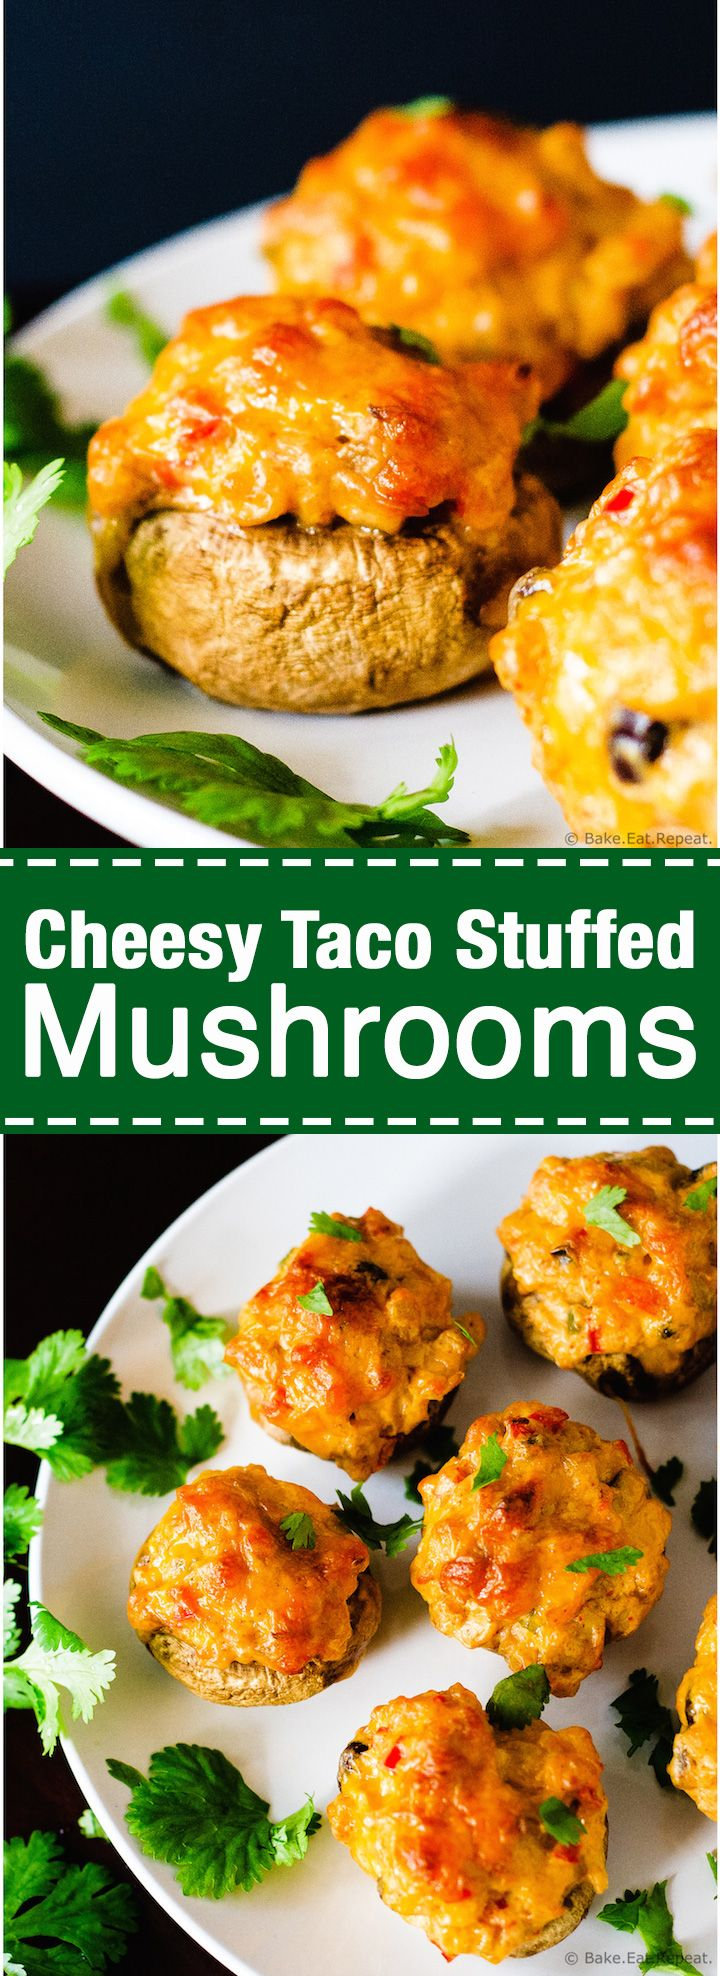 Cheesy Taco Stuffed Mushrooms - Easy to make cheesy taco stuffed mushrooms, a perfect appetizer. Plus they freeze well and can be made ahead of time!